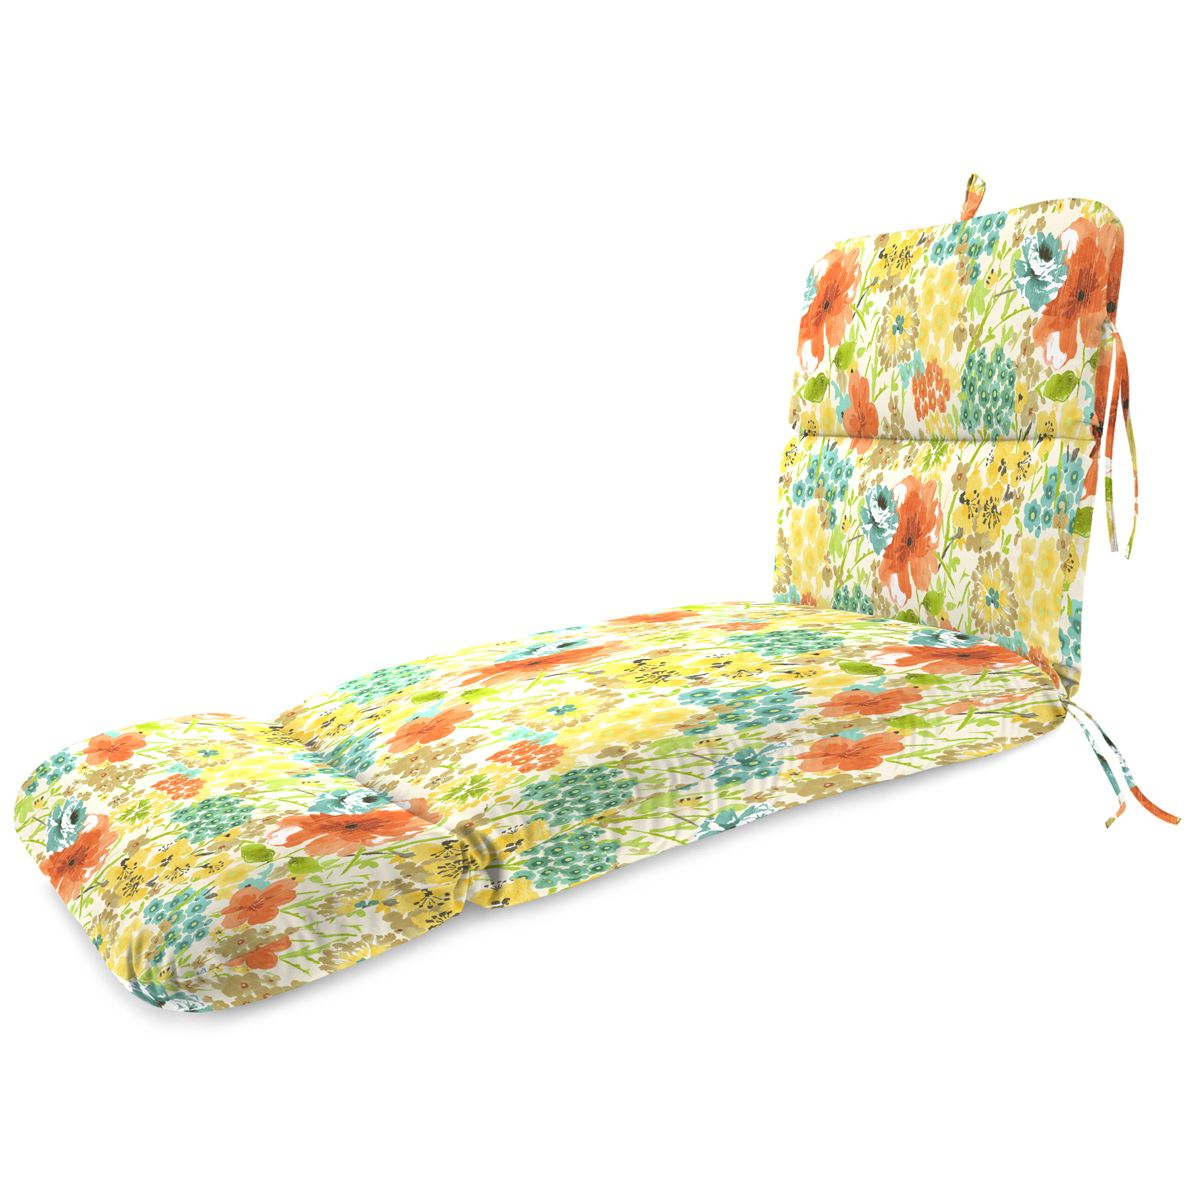 2019 Floral Blossom Chaise Lounge Chairs With Cushion Regarding Jordan Manufacturing Chaise Cushion – Flower Of Life (View 1 of 25)